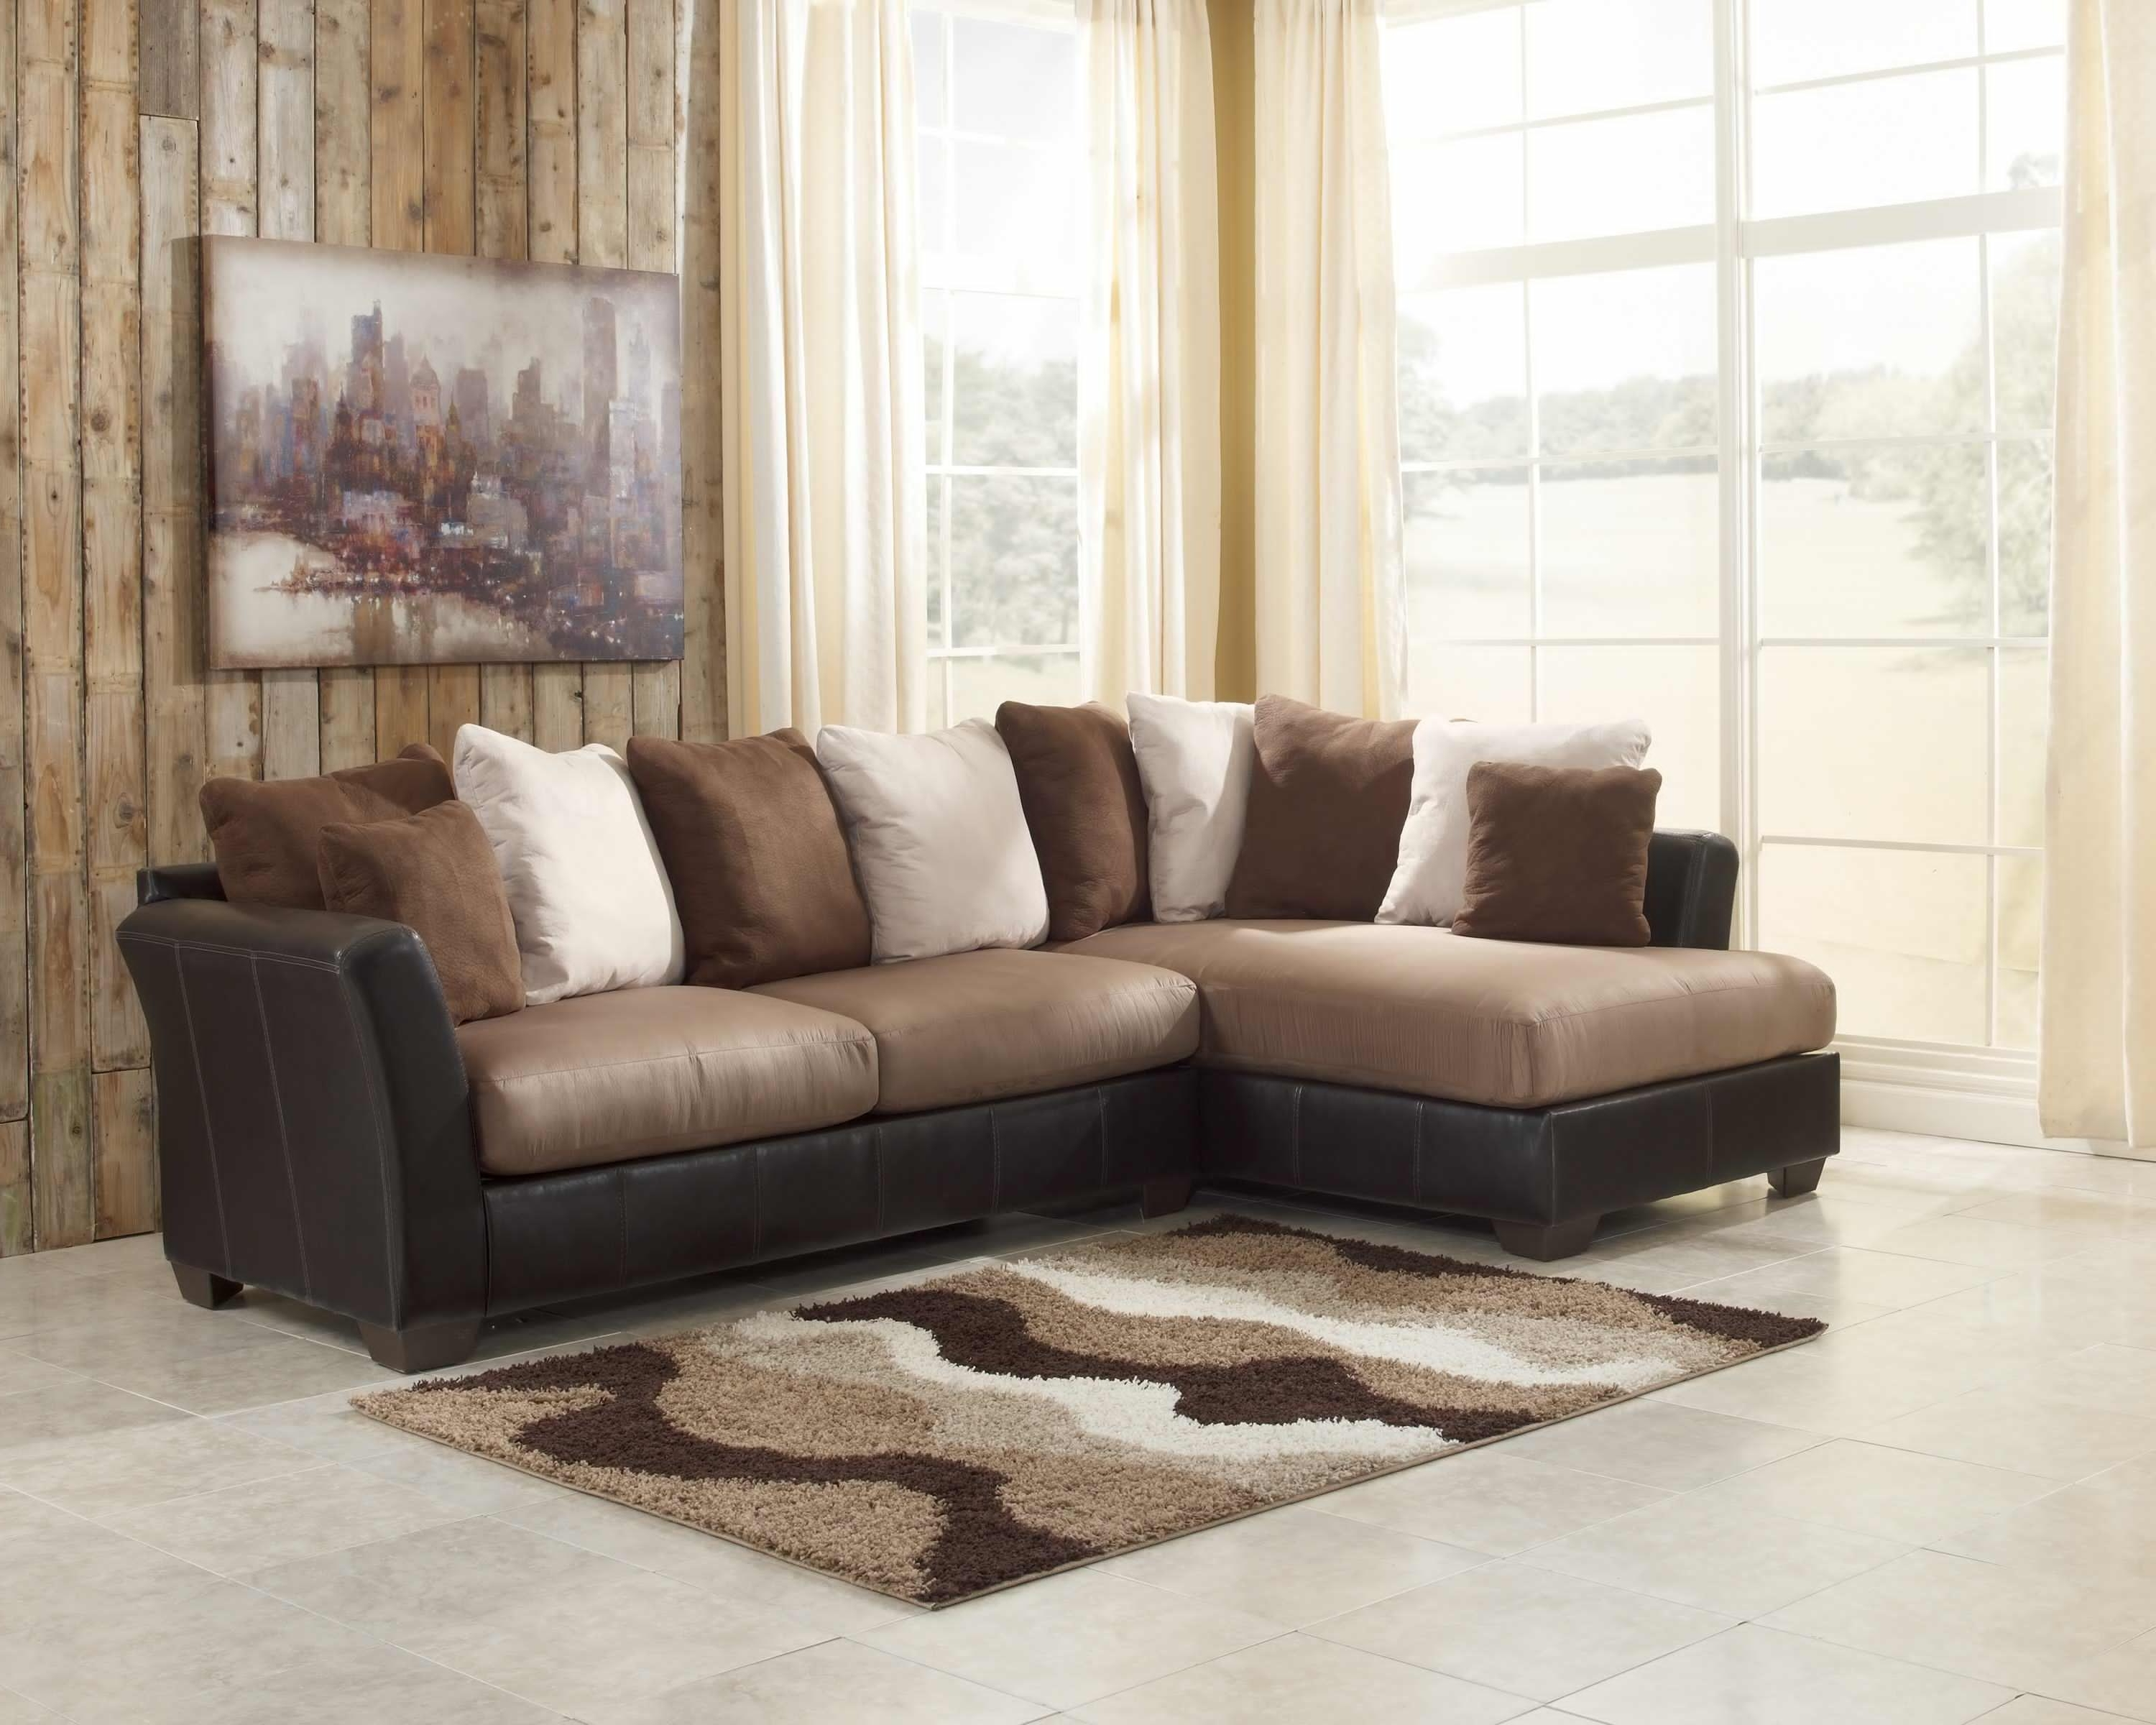 2 Piece Sectionals With Chaise Throughout Fashionable Sectional Sofa Design: Two Piece Sectional Sofa Chaise Leather (View 1 of 15)